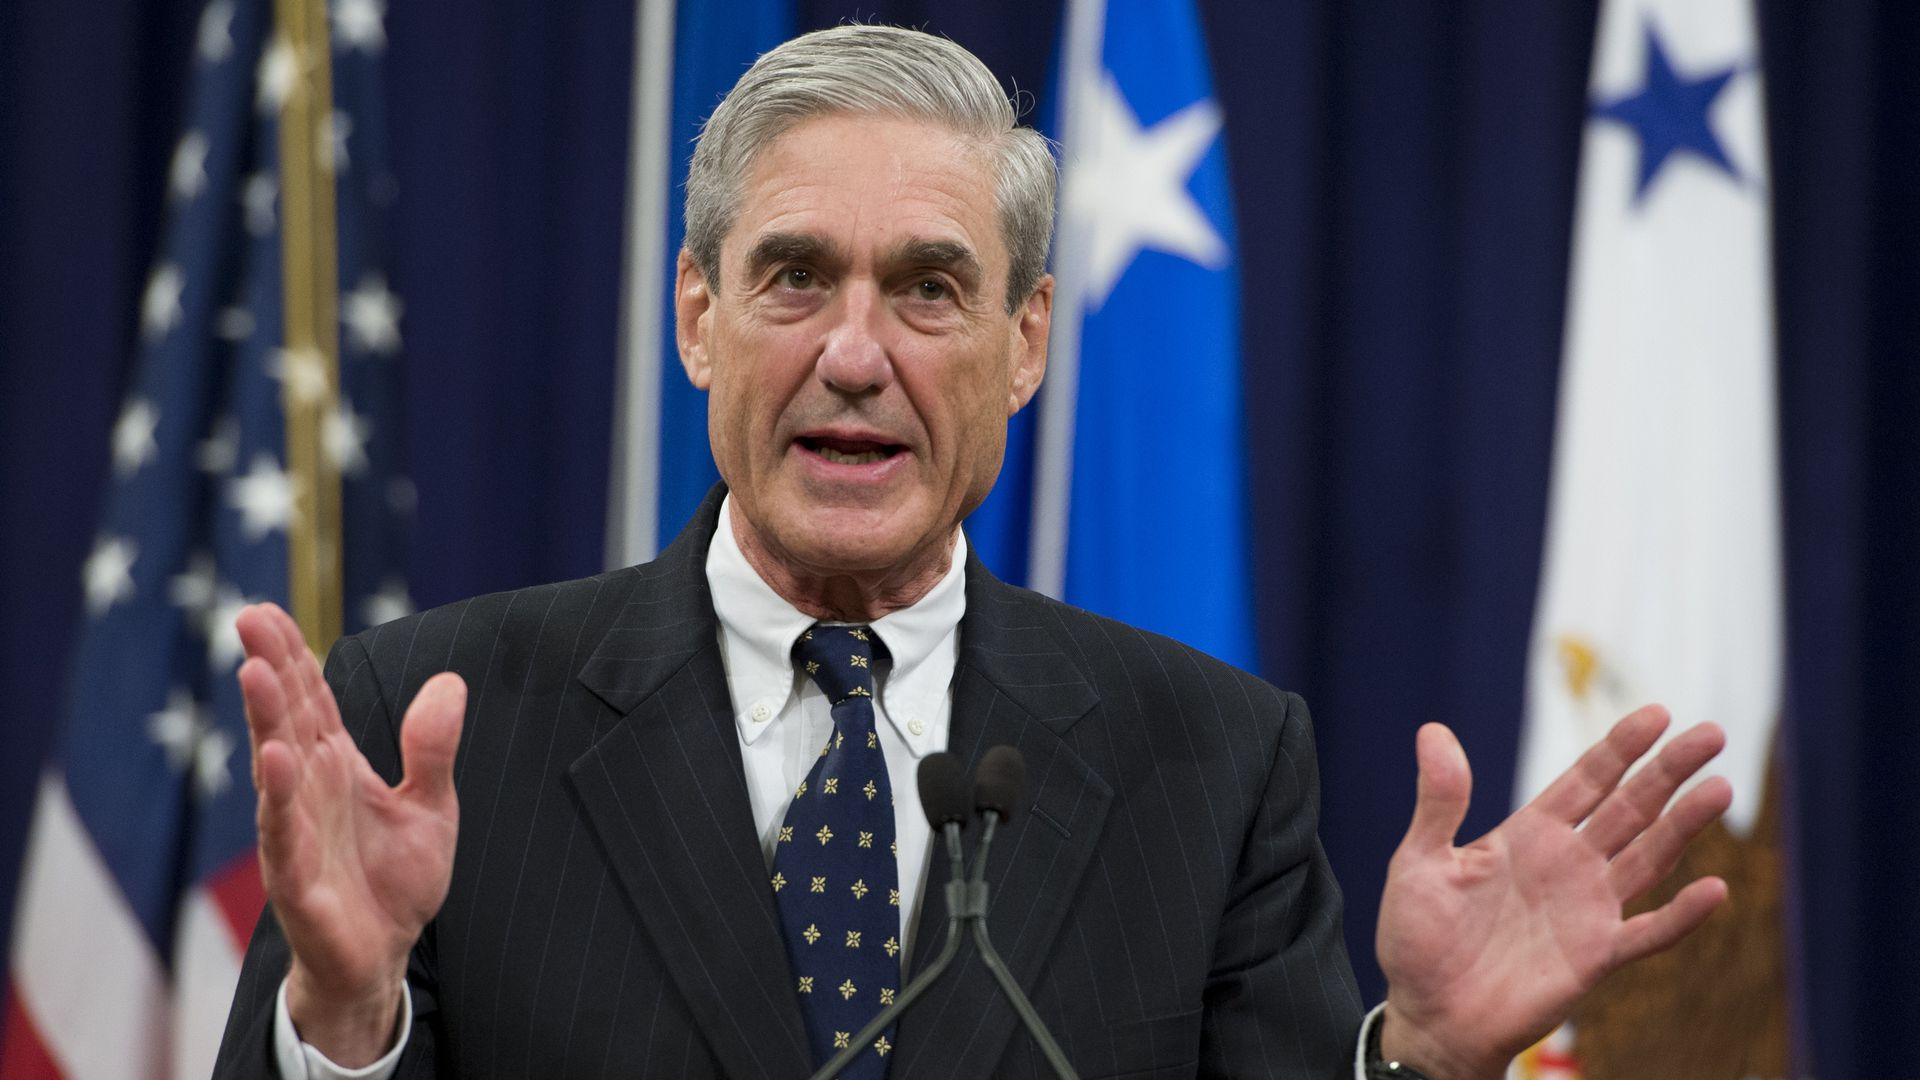 Bob Mueller gestures while speaking with his hands up.